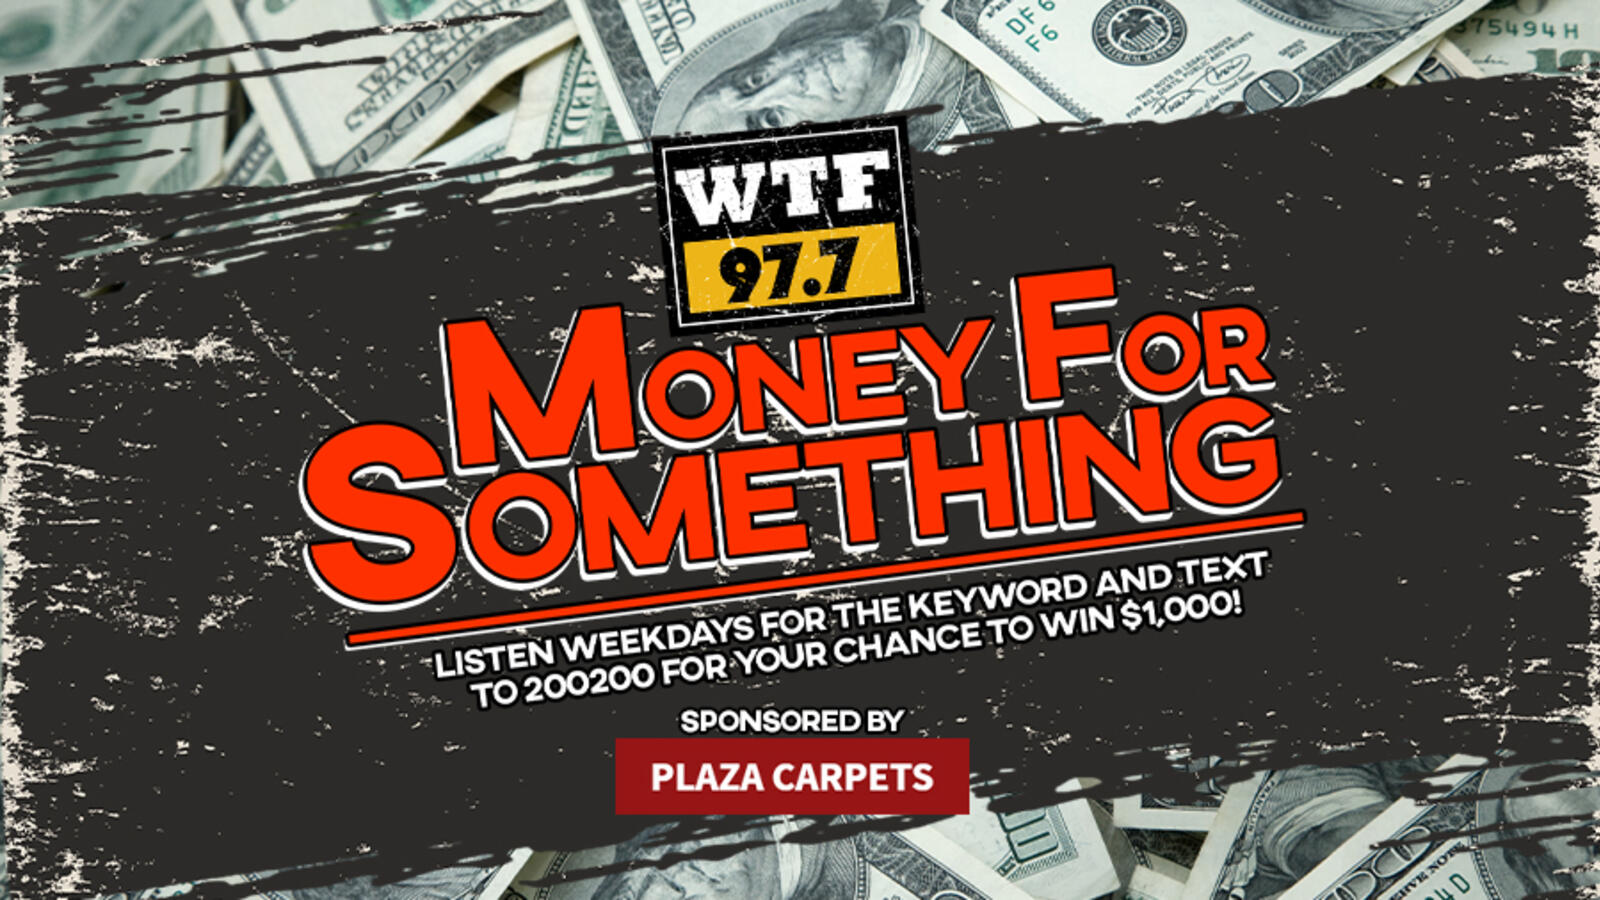 Cash in and win $1,000! Listen to WTF 97.7 weekdays every hour!